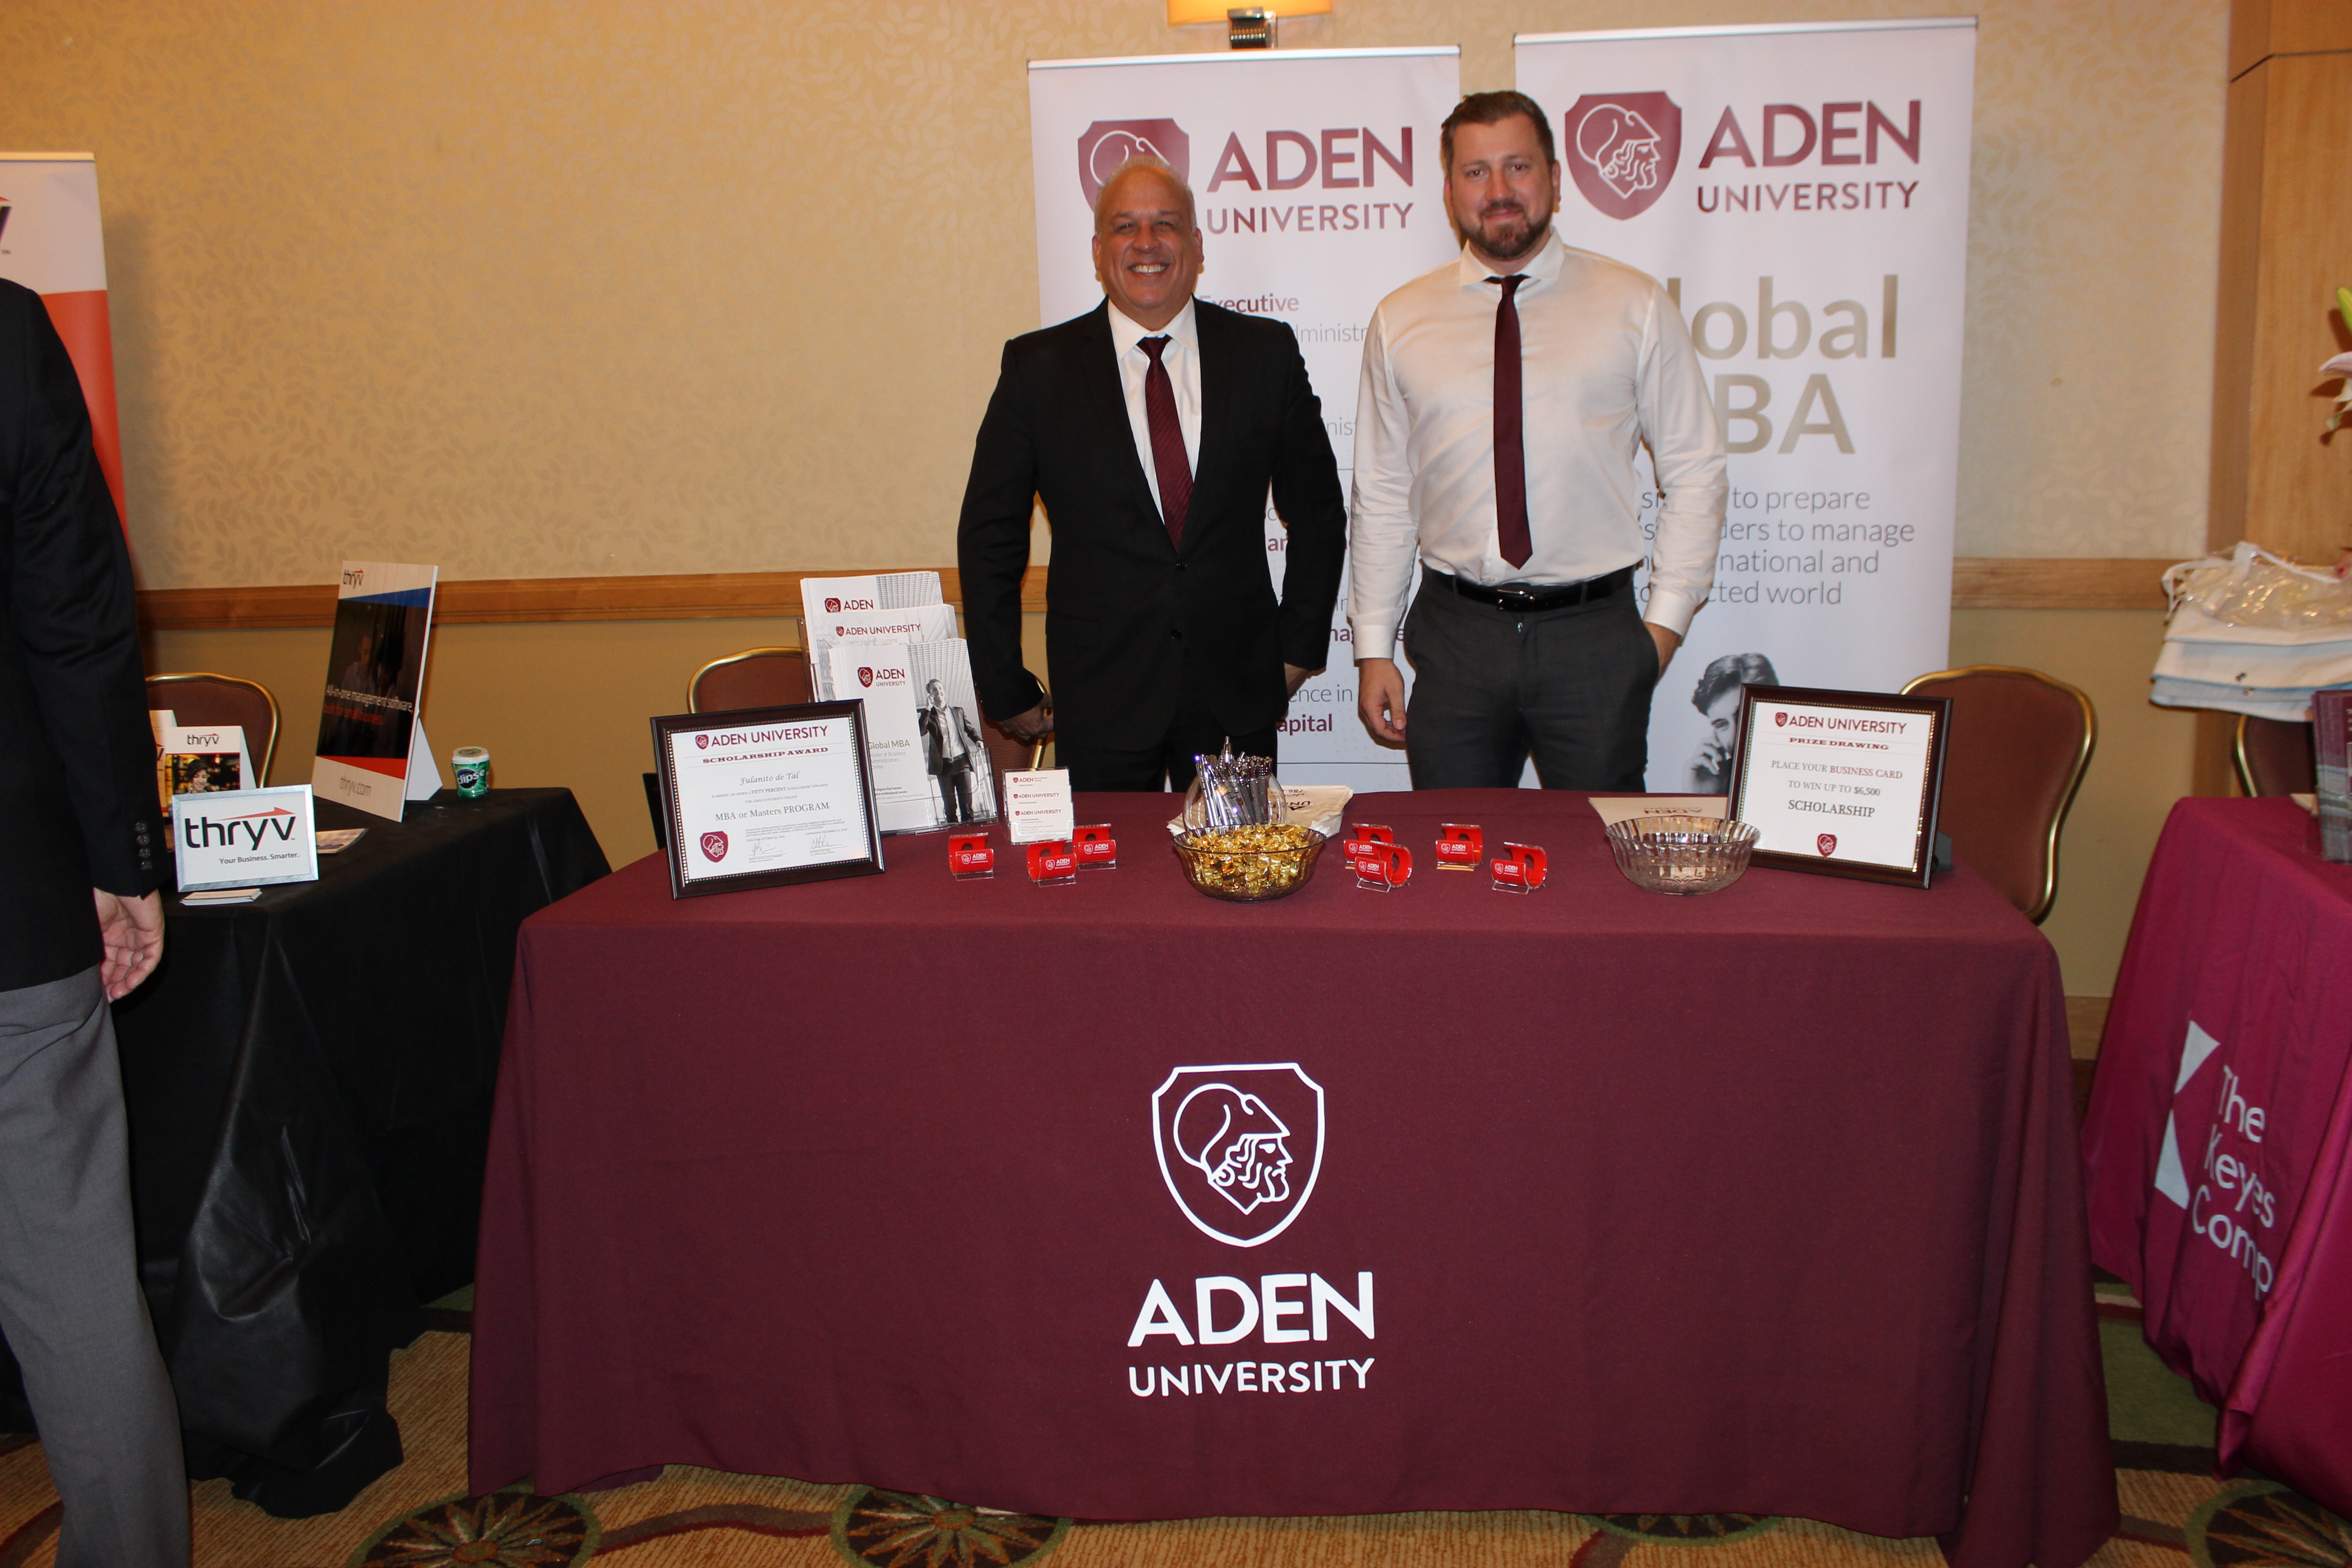 Aden University representing business in ExpoMiami 2018 hosted by the Doral Chamber of Commerce.